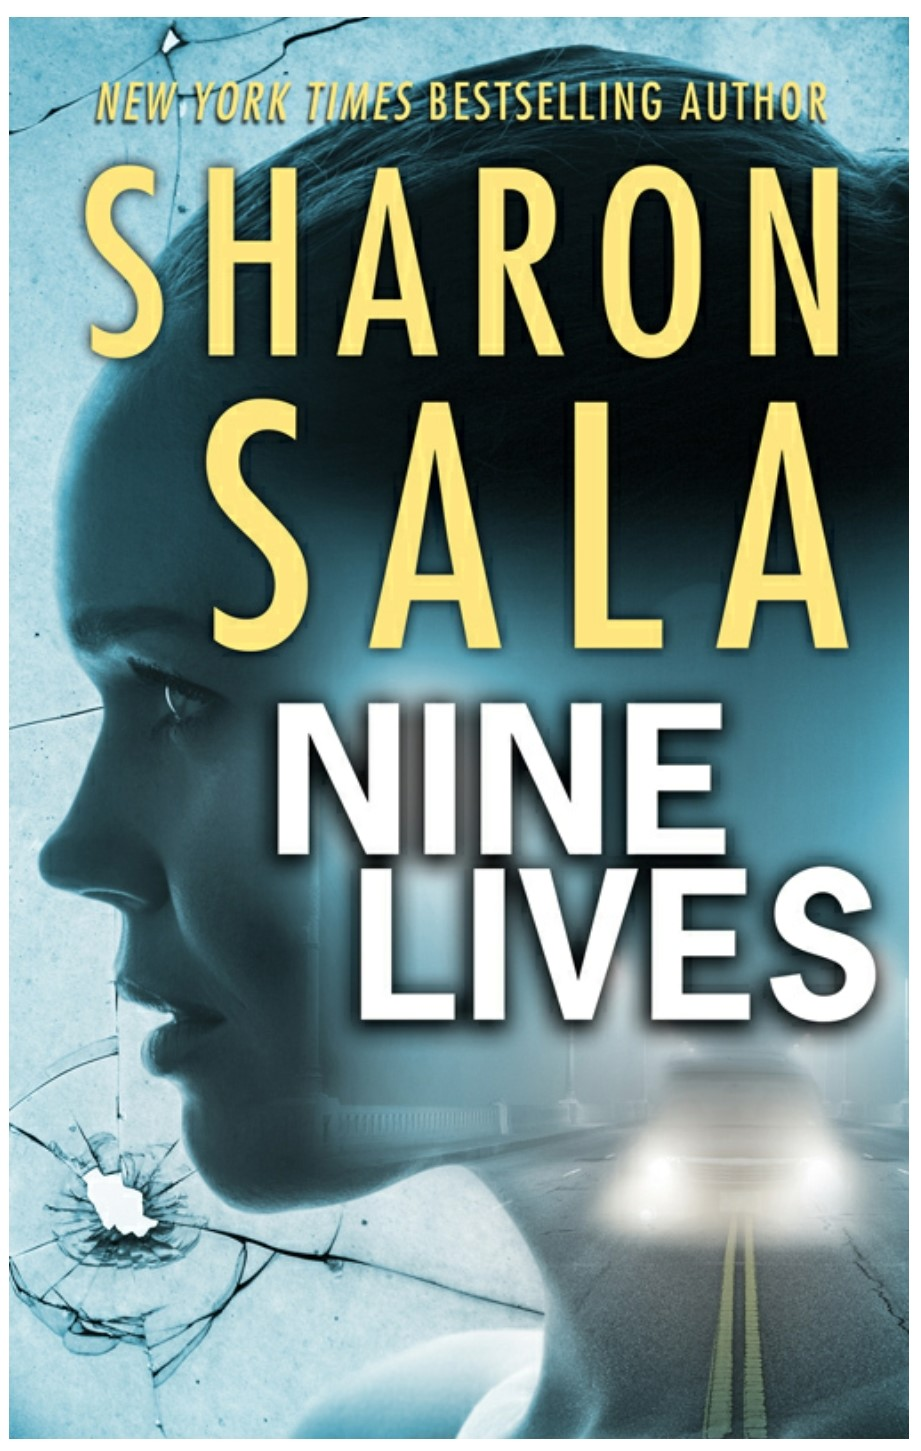 2018 Book Cover for Nine Lives by Sharon Sala